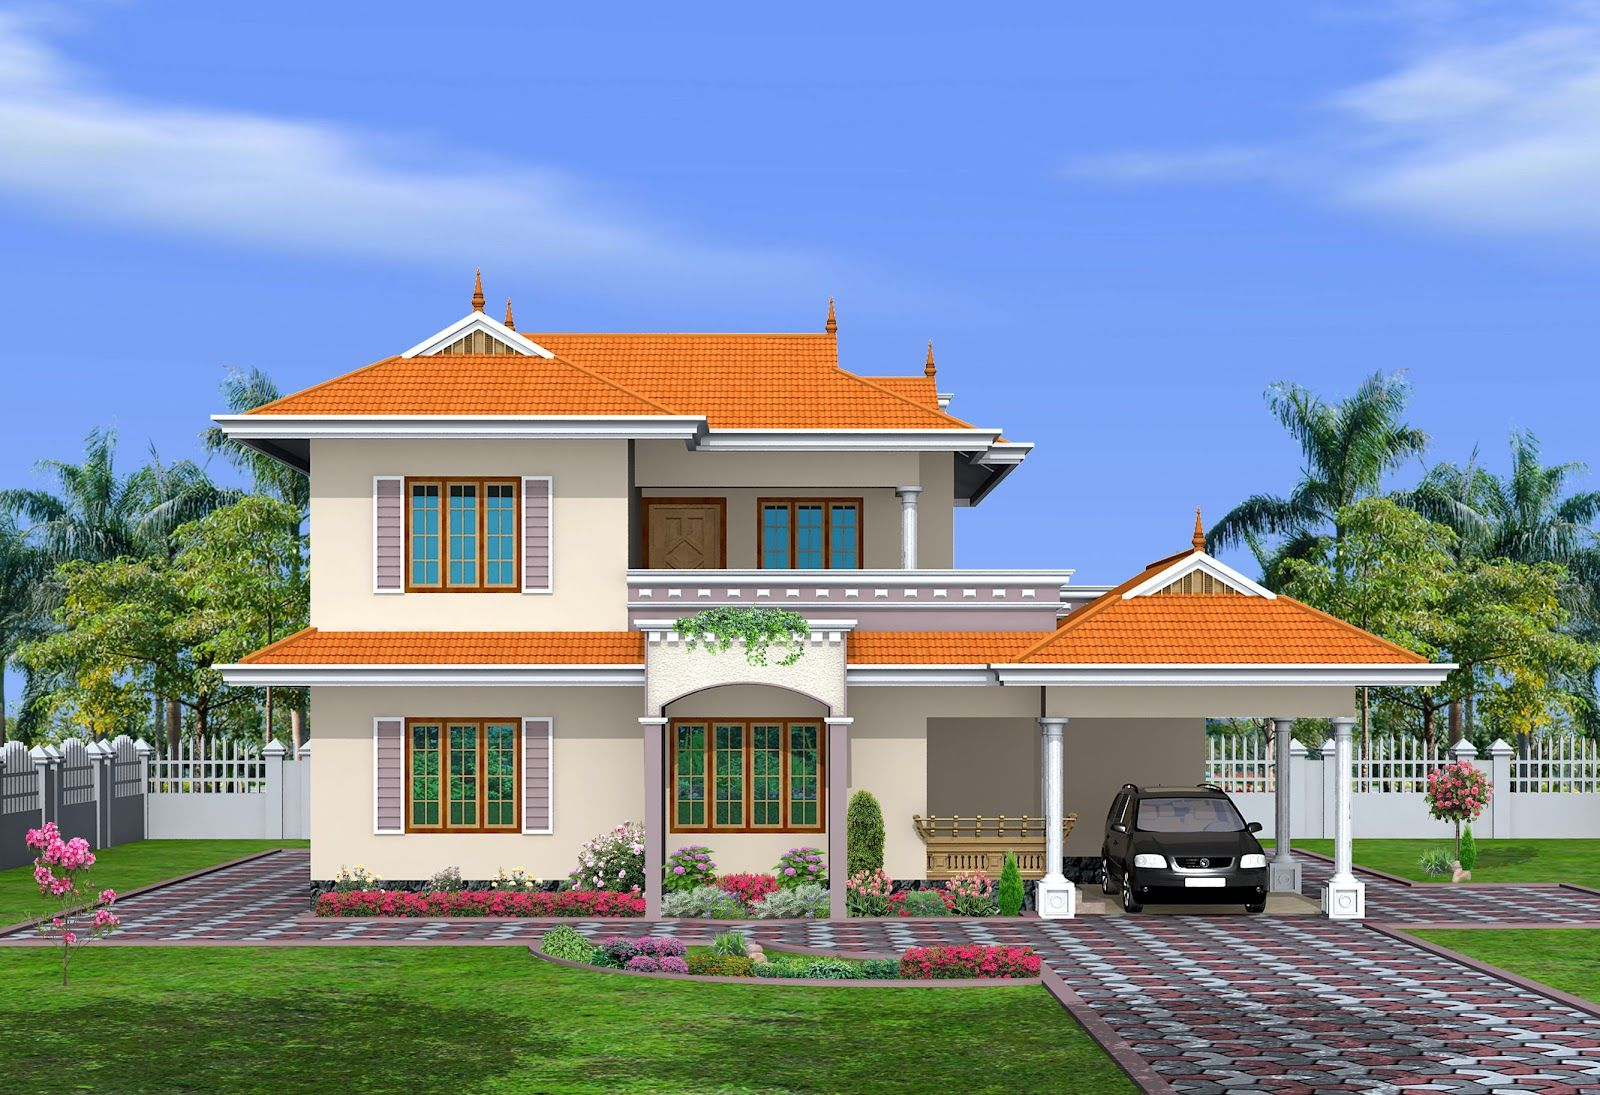 Kerala home design home and house home elevation plans 3d exterior design creative exterior design